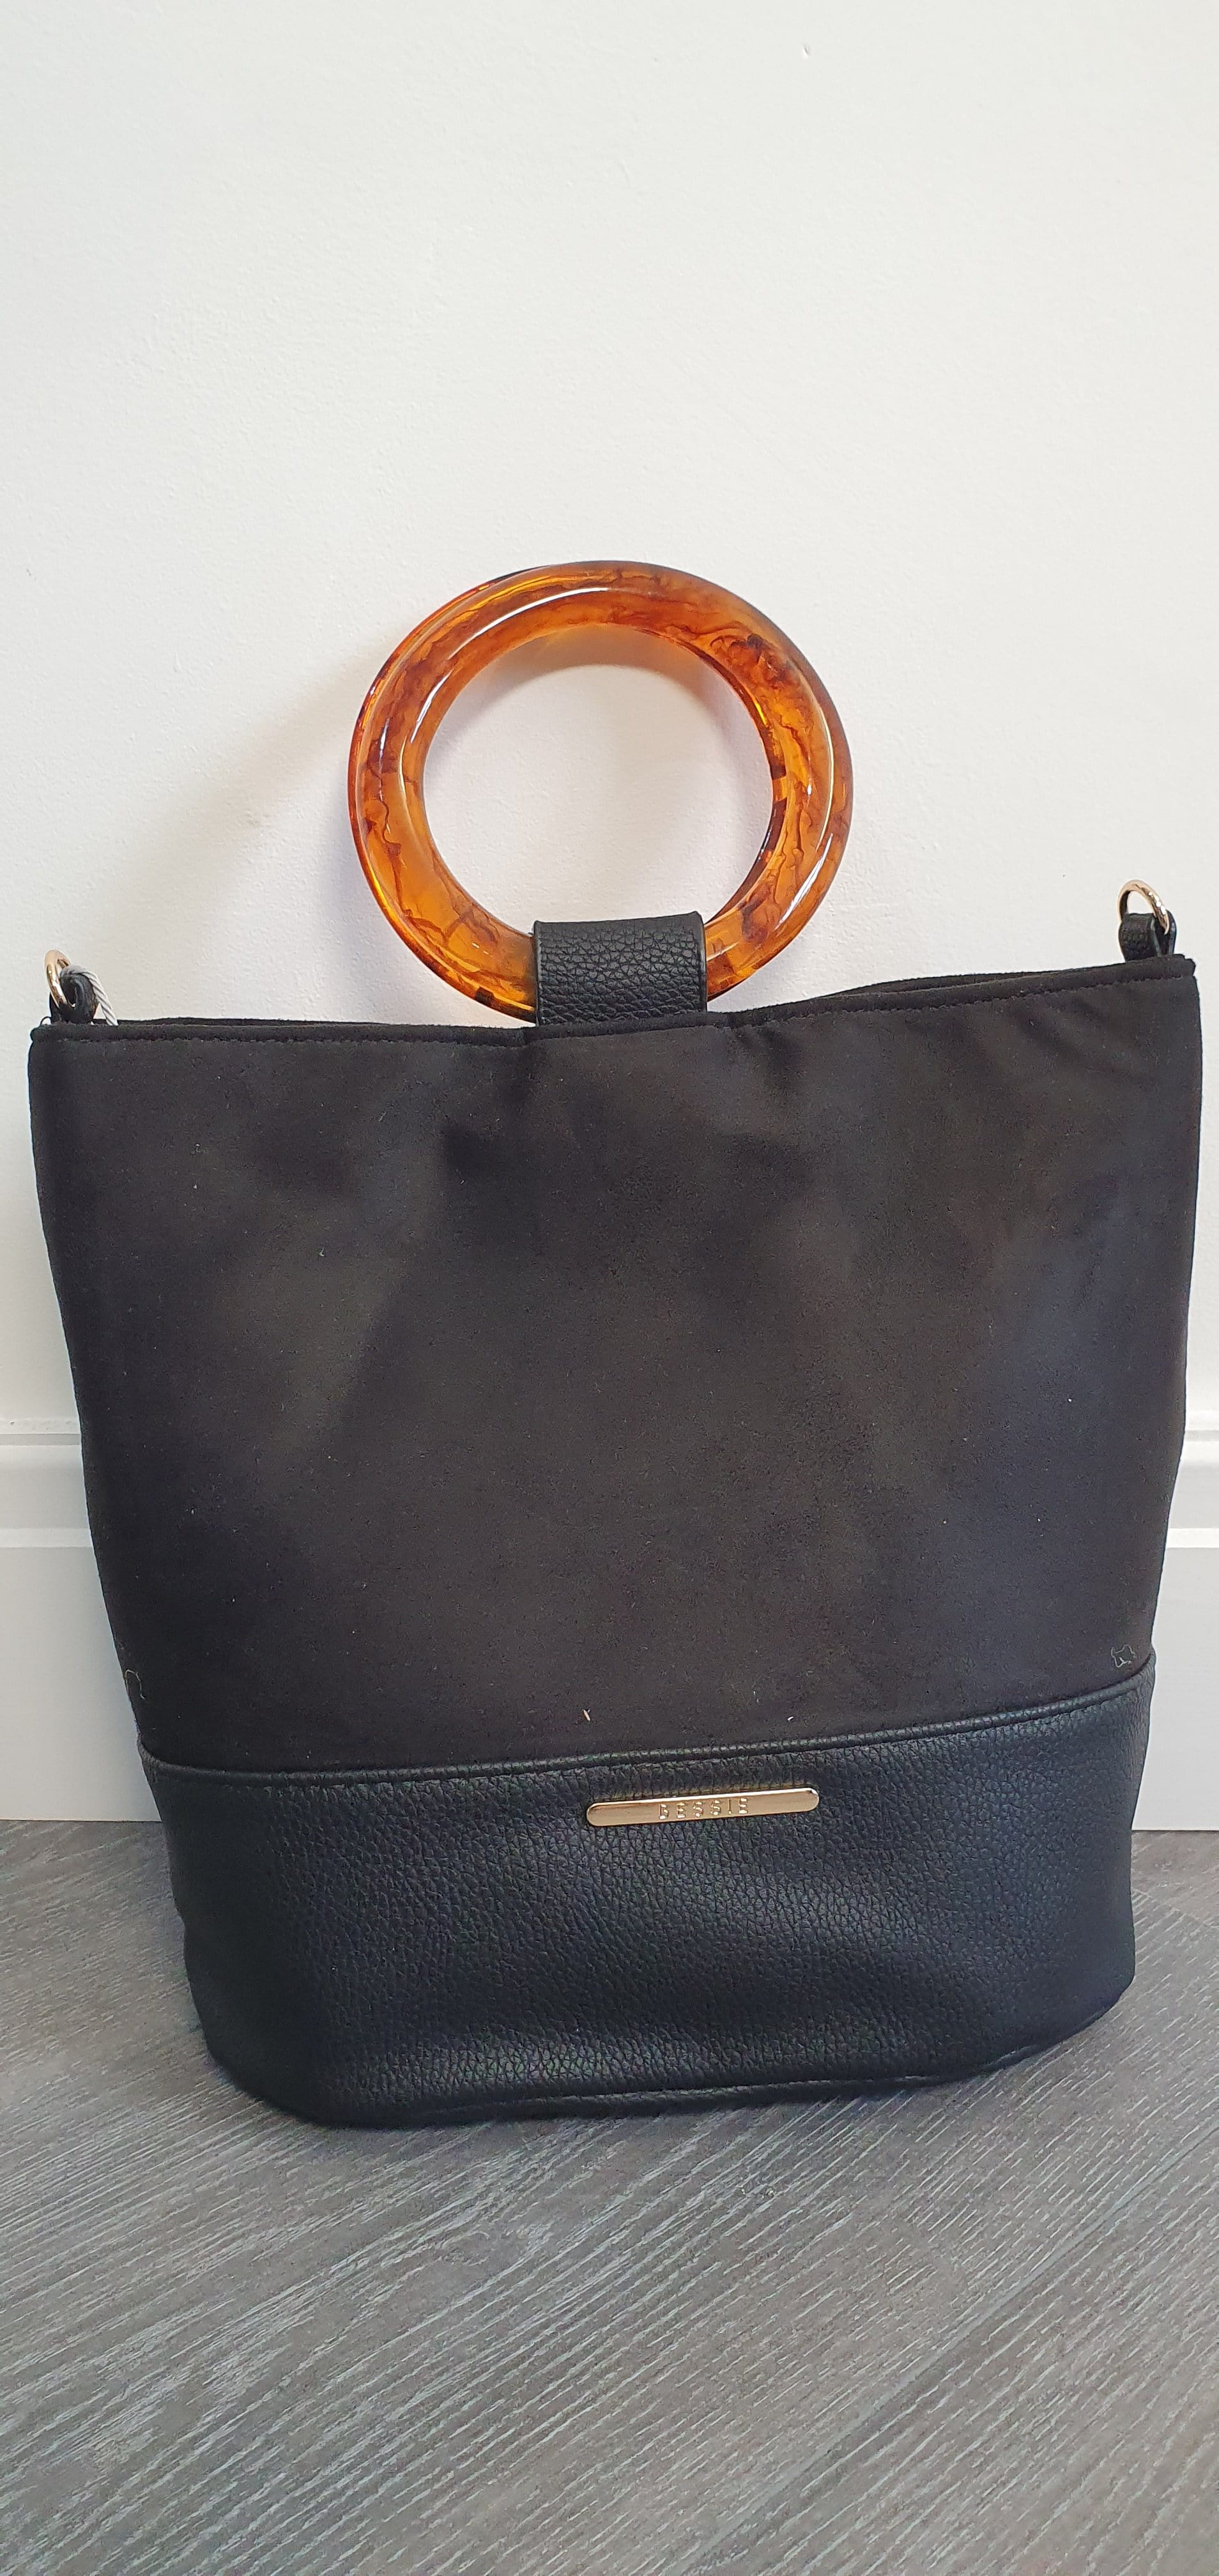 The Bessi Soft Cyclinder handbag